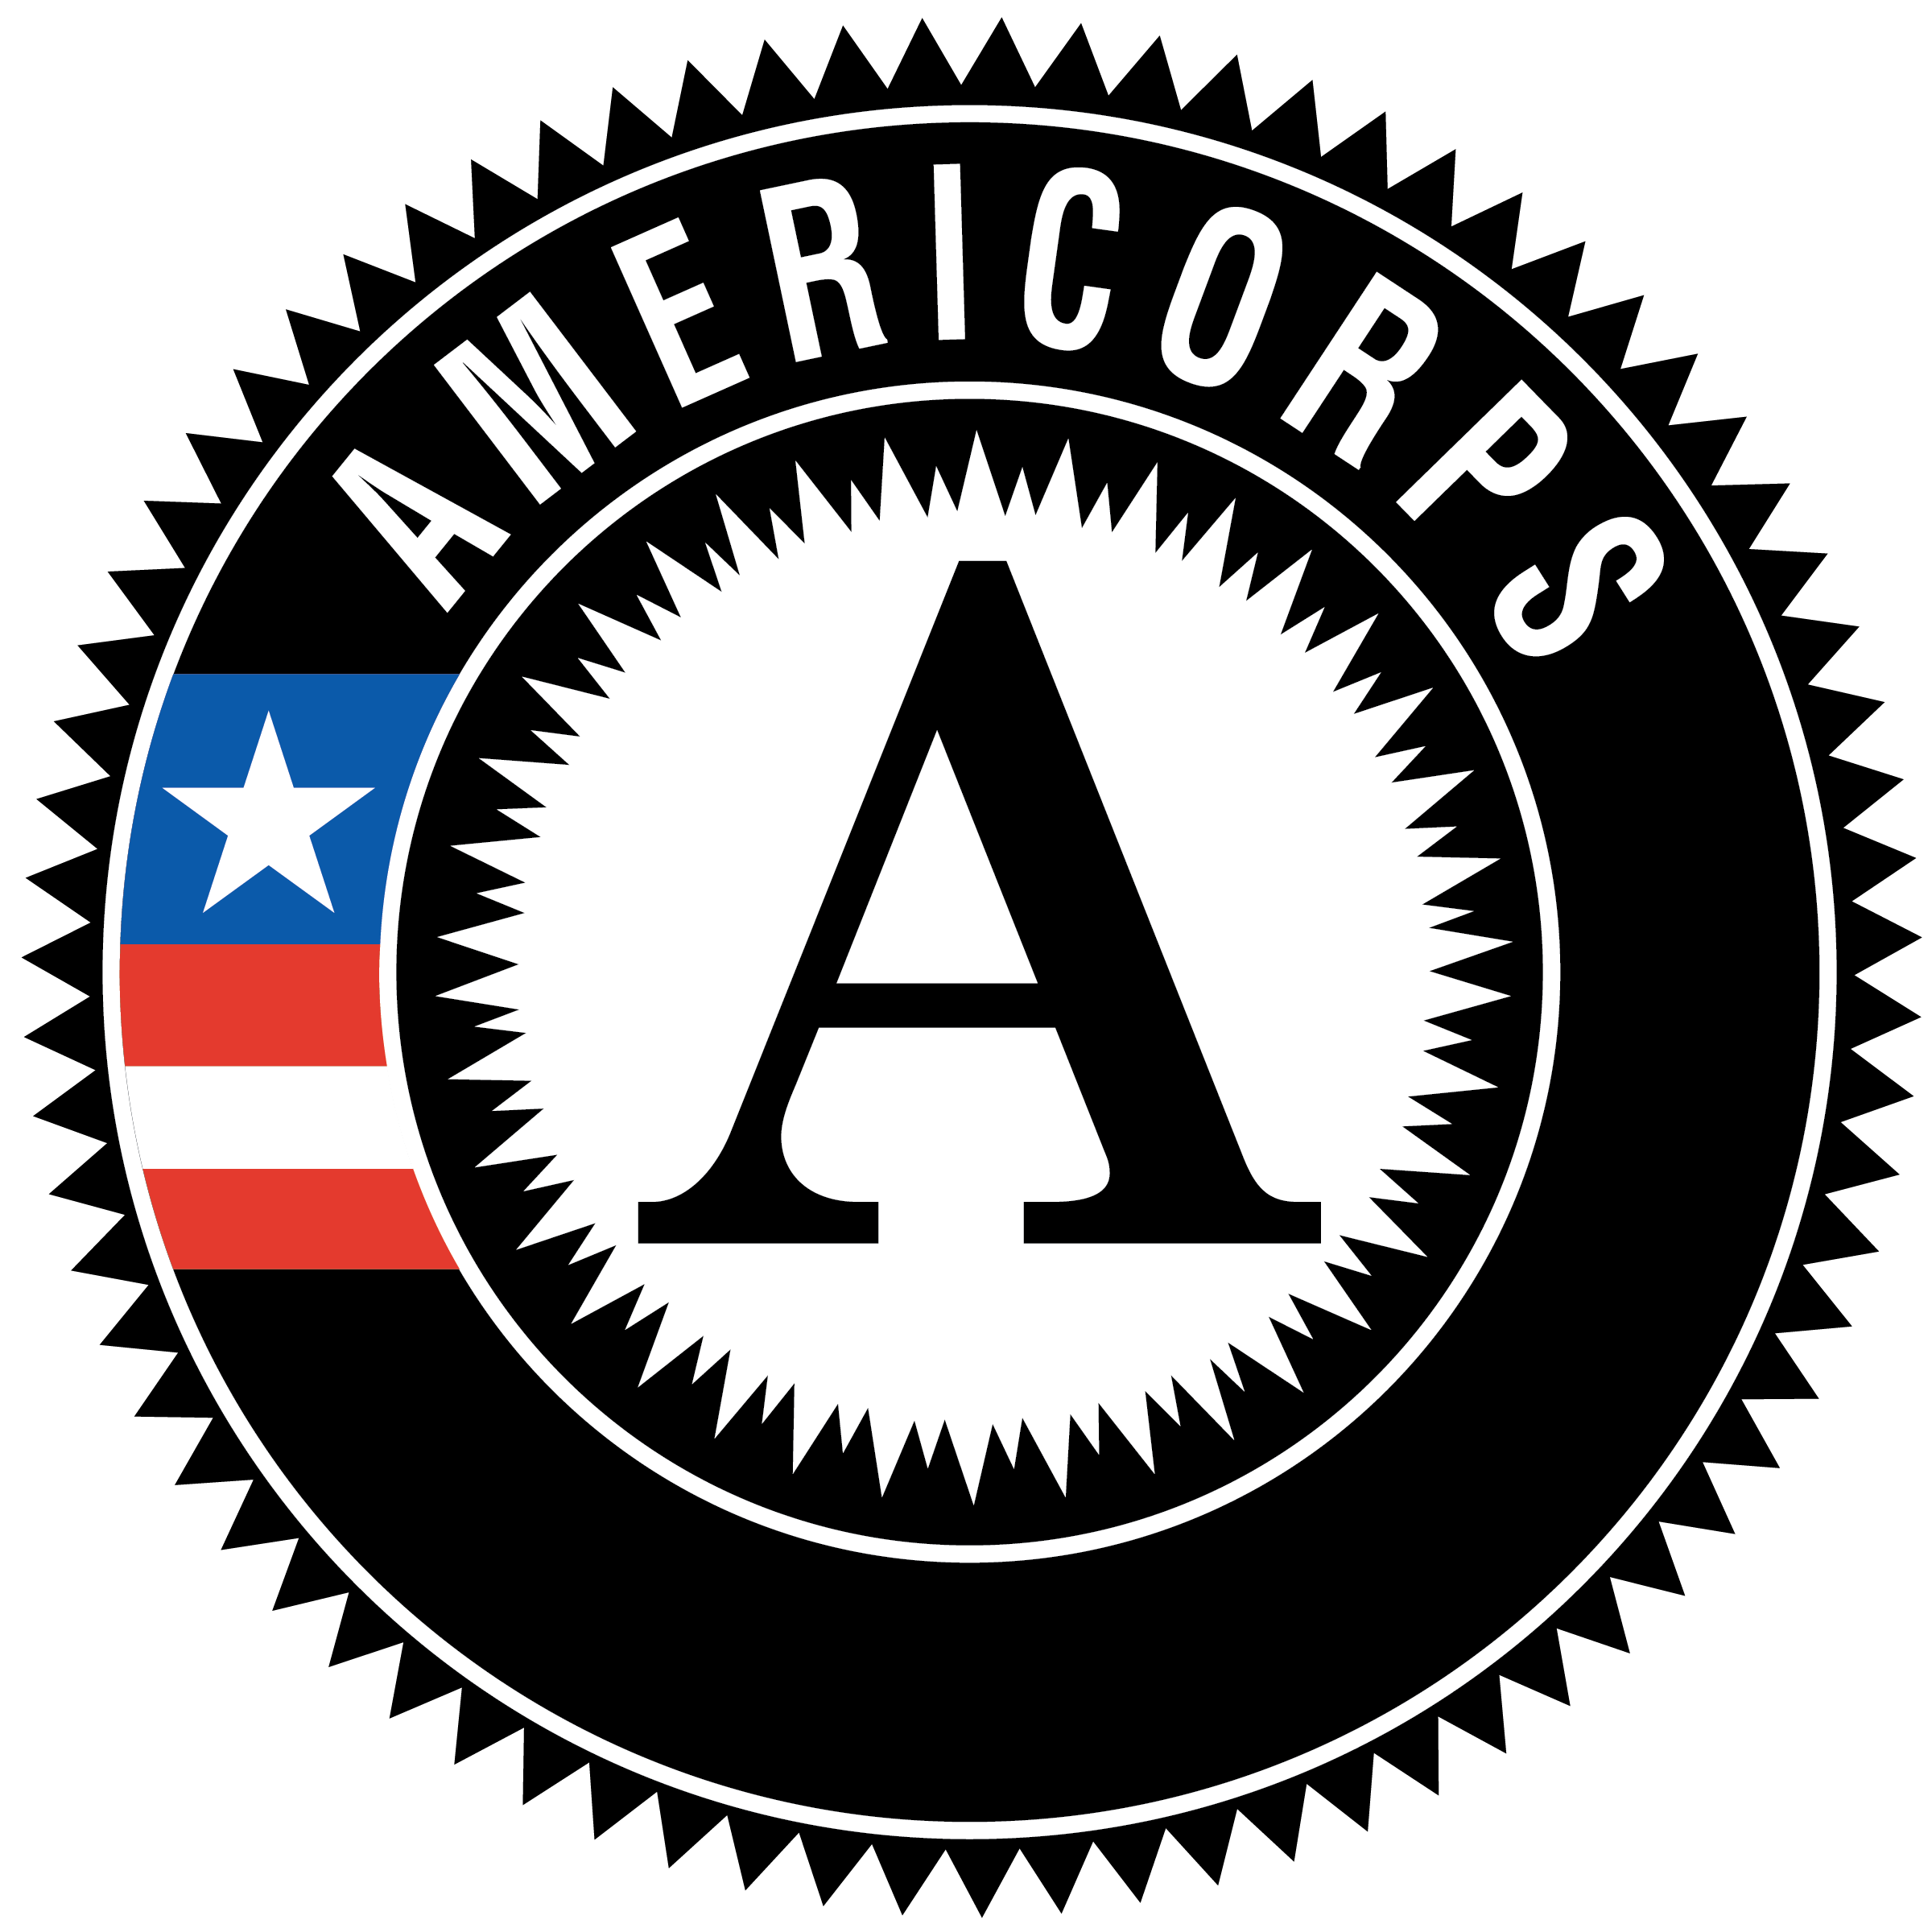 New AmeriCorps Vistas Join LETS GO